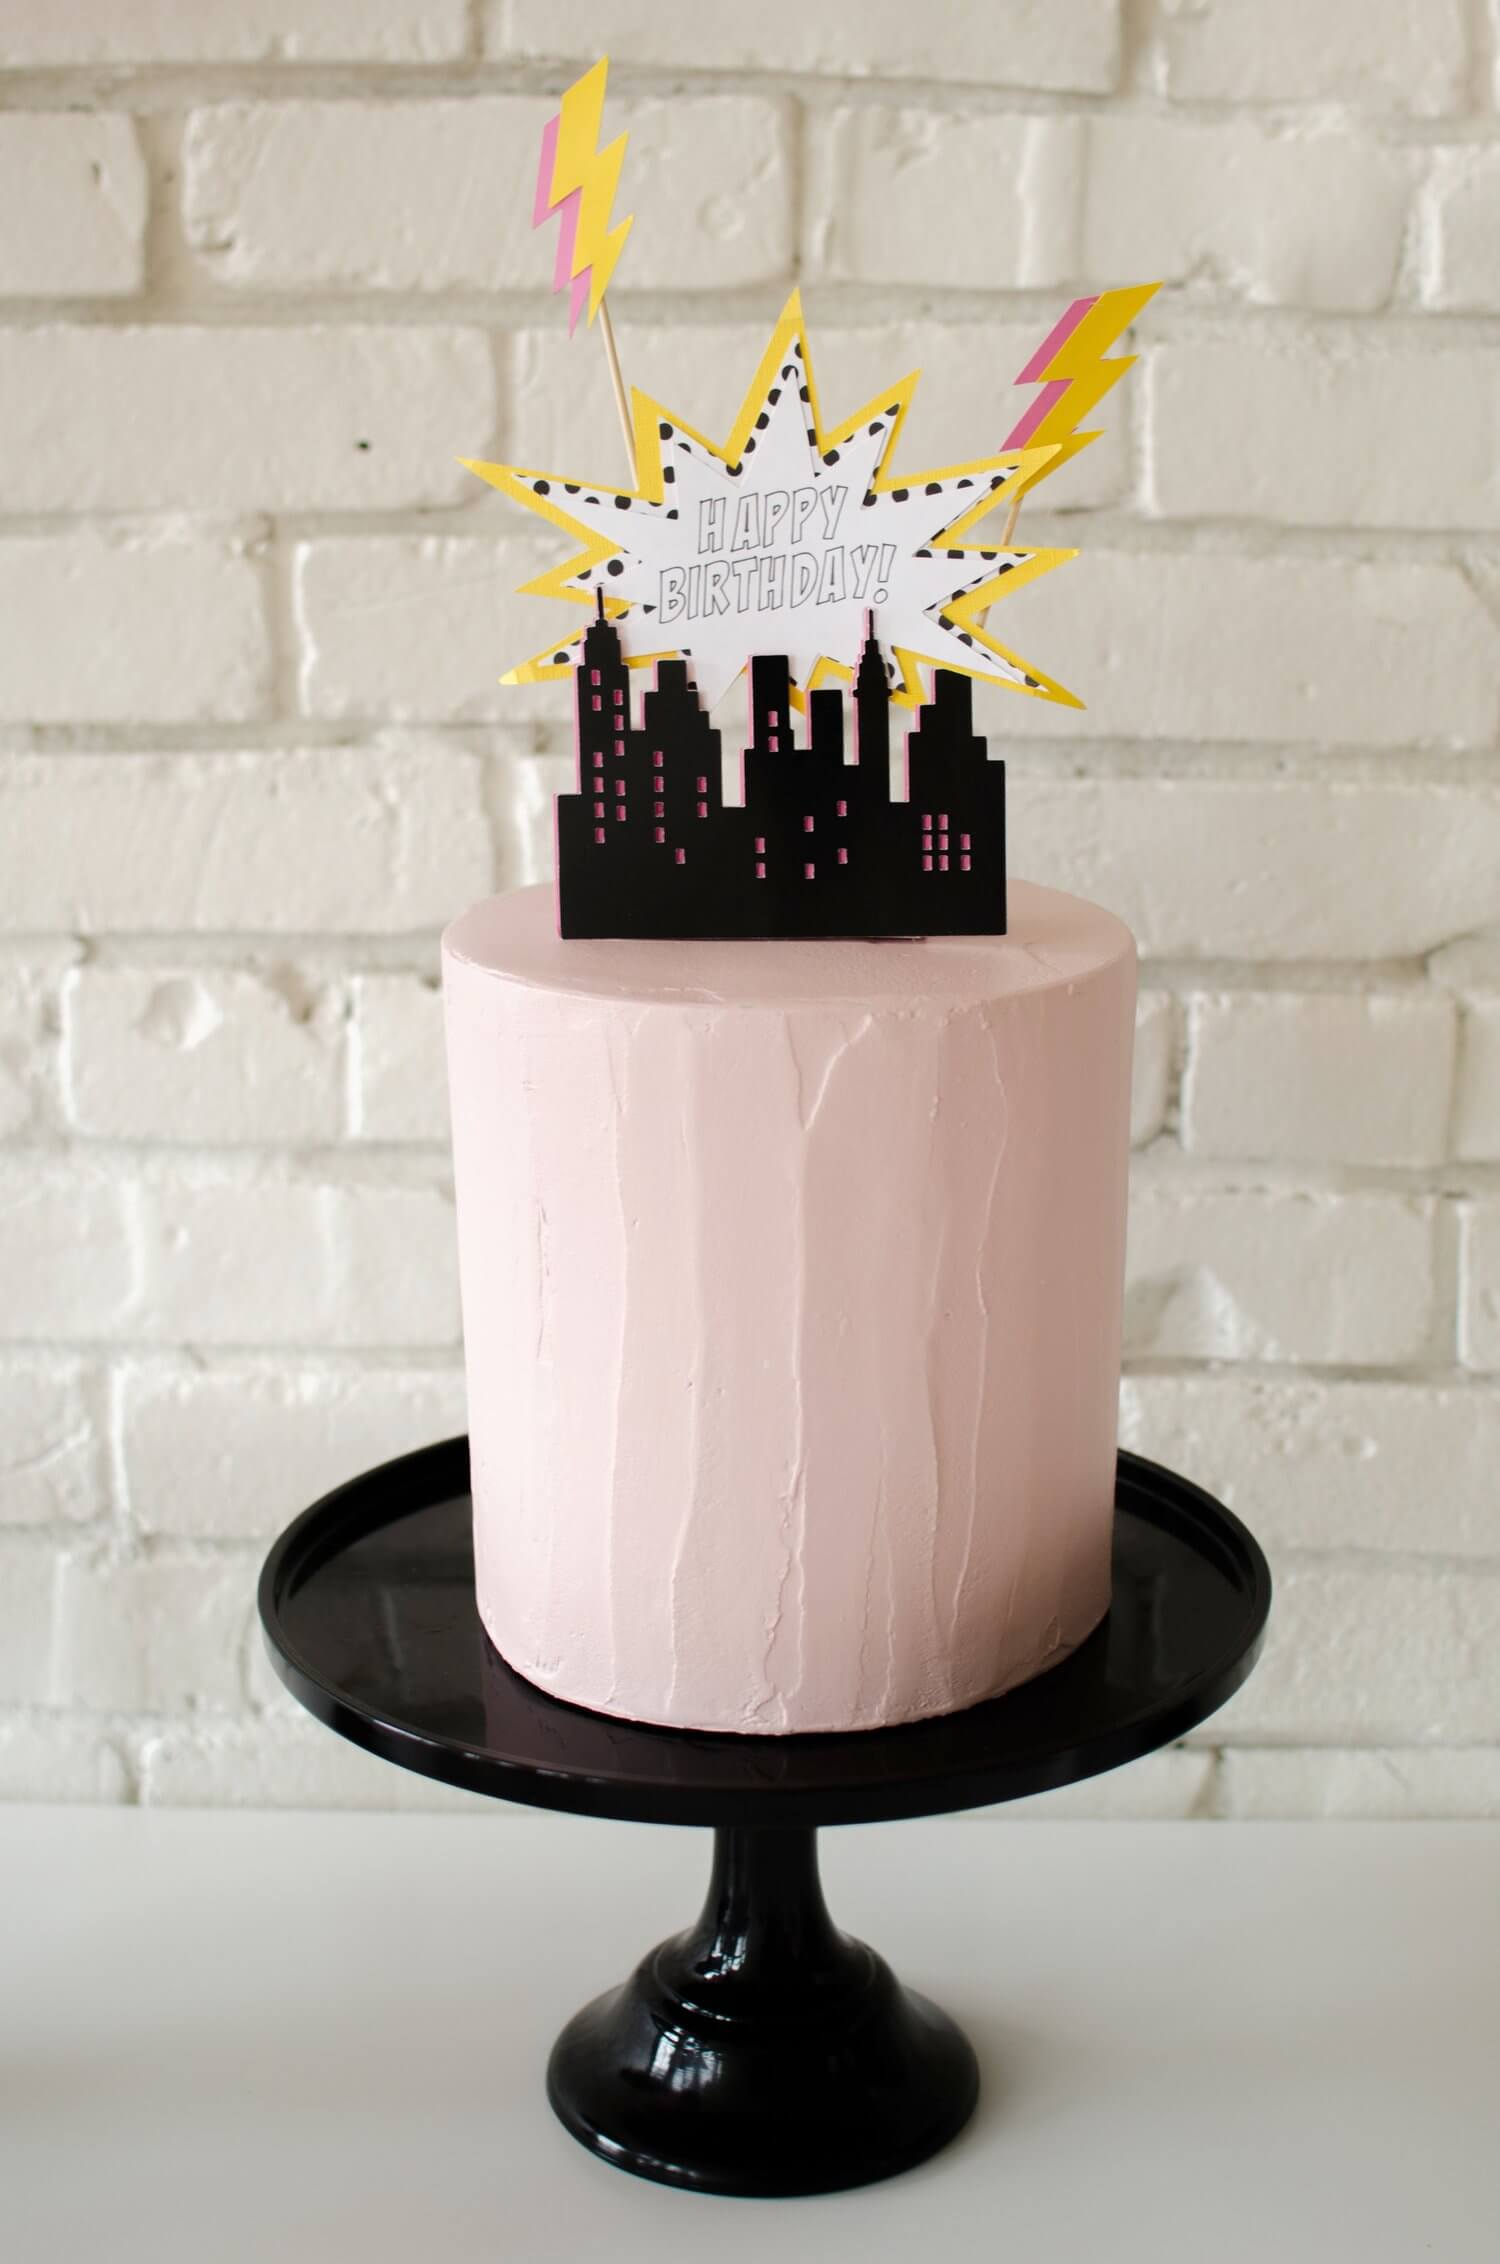 """Be sure to make your party cake make a statement - for this super hero birthday party, the cake was topped with a city skyline, lightening bolts and a burst shape that reads """"Happy Birthday"""" - see more kids party ideas on Mint Event Design www.minteventdesign.com #kidspartyideas #birthdaypartyideas #superheroparty #birthdayparty #partyideas #superhero #birthdaycake #birthdaycakeideas"""